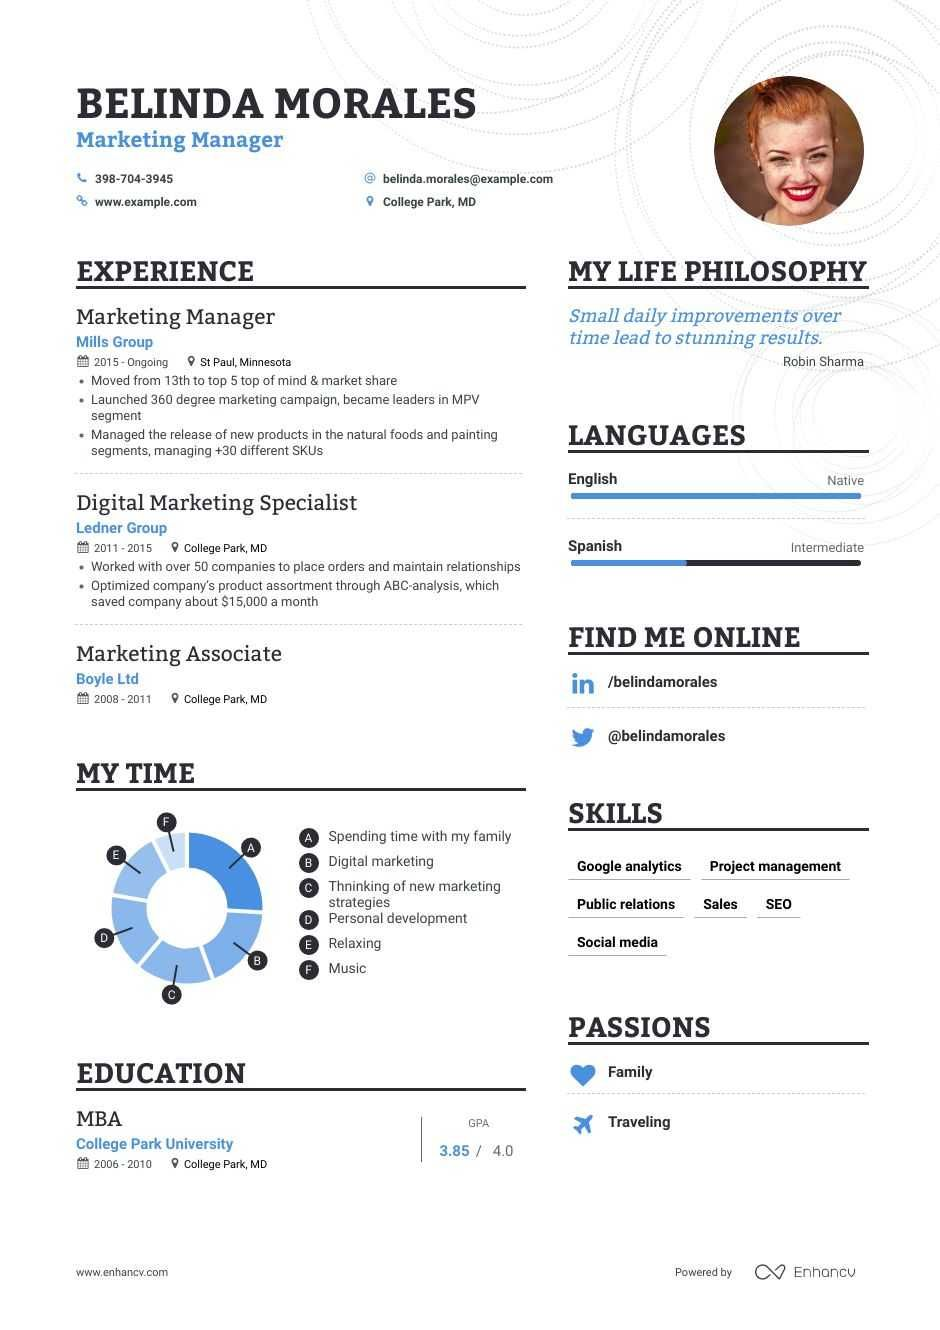 Marketing Manager Resume Samples A Step by Step Guide for 2020